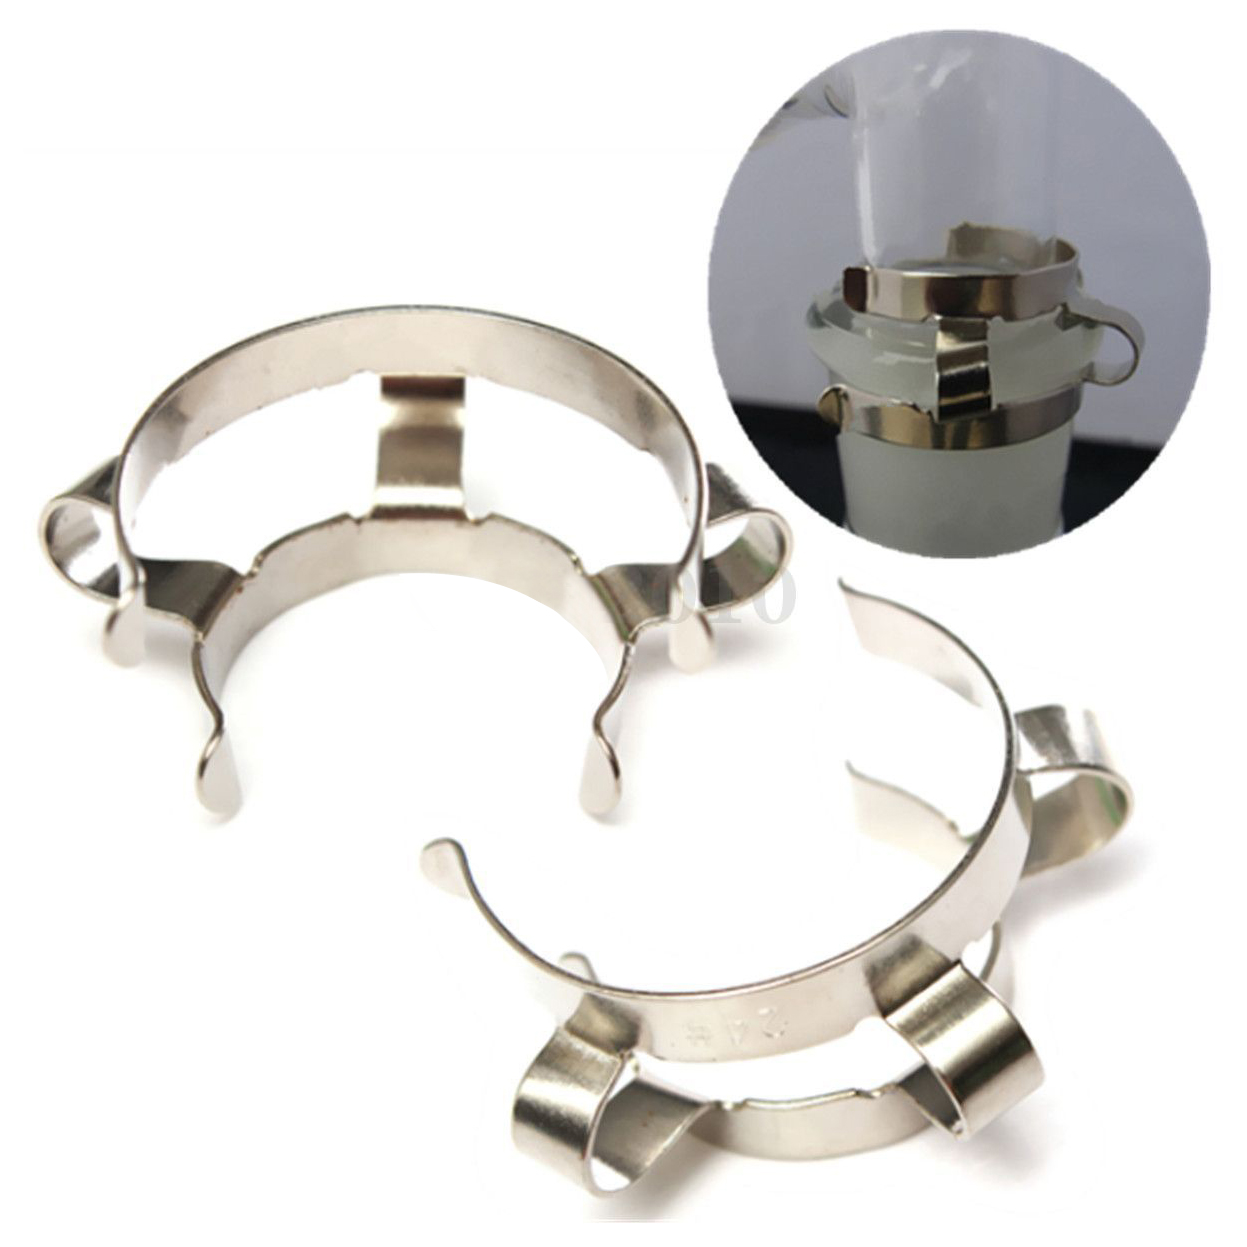 SOSW-2pcs 24# Stainless Steel Clip Keck Clamp For 24/29 24/40 Glass Ground Joint